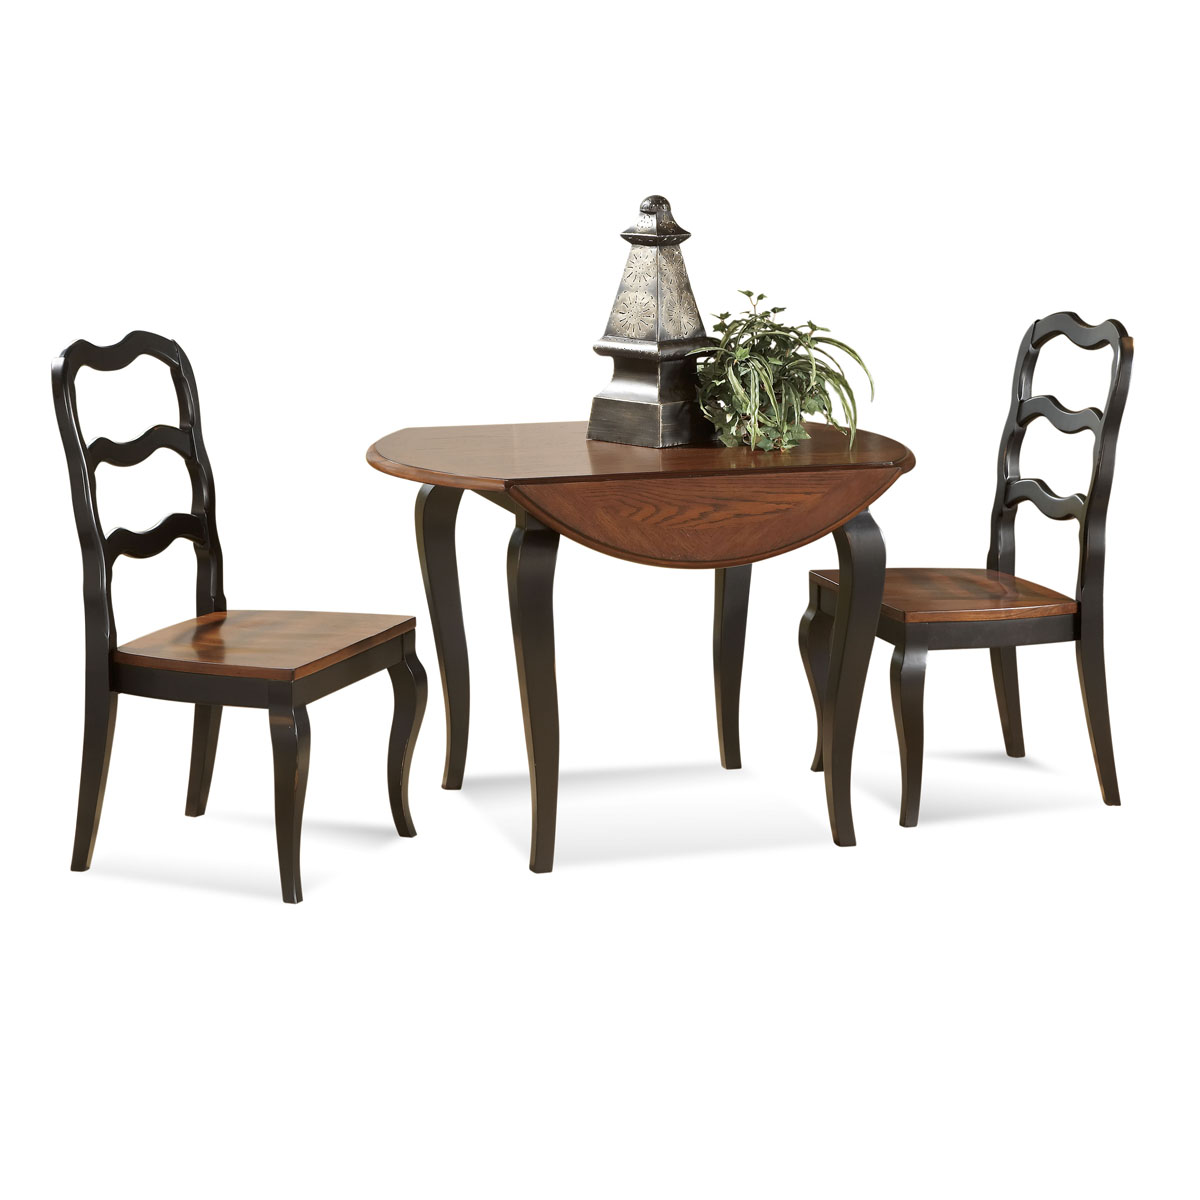 Modern Drop Leaf Tables Small Spaces 5 Styles Of Drop Leaf Dining Table For Small Spaces